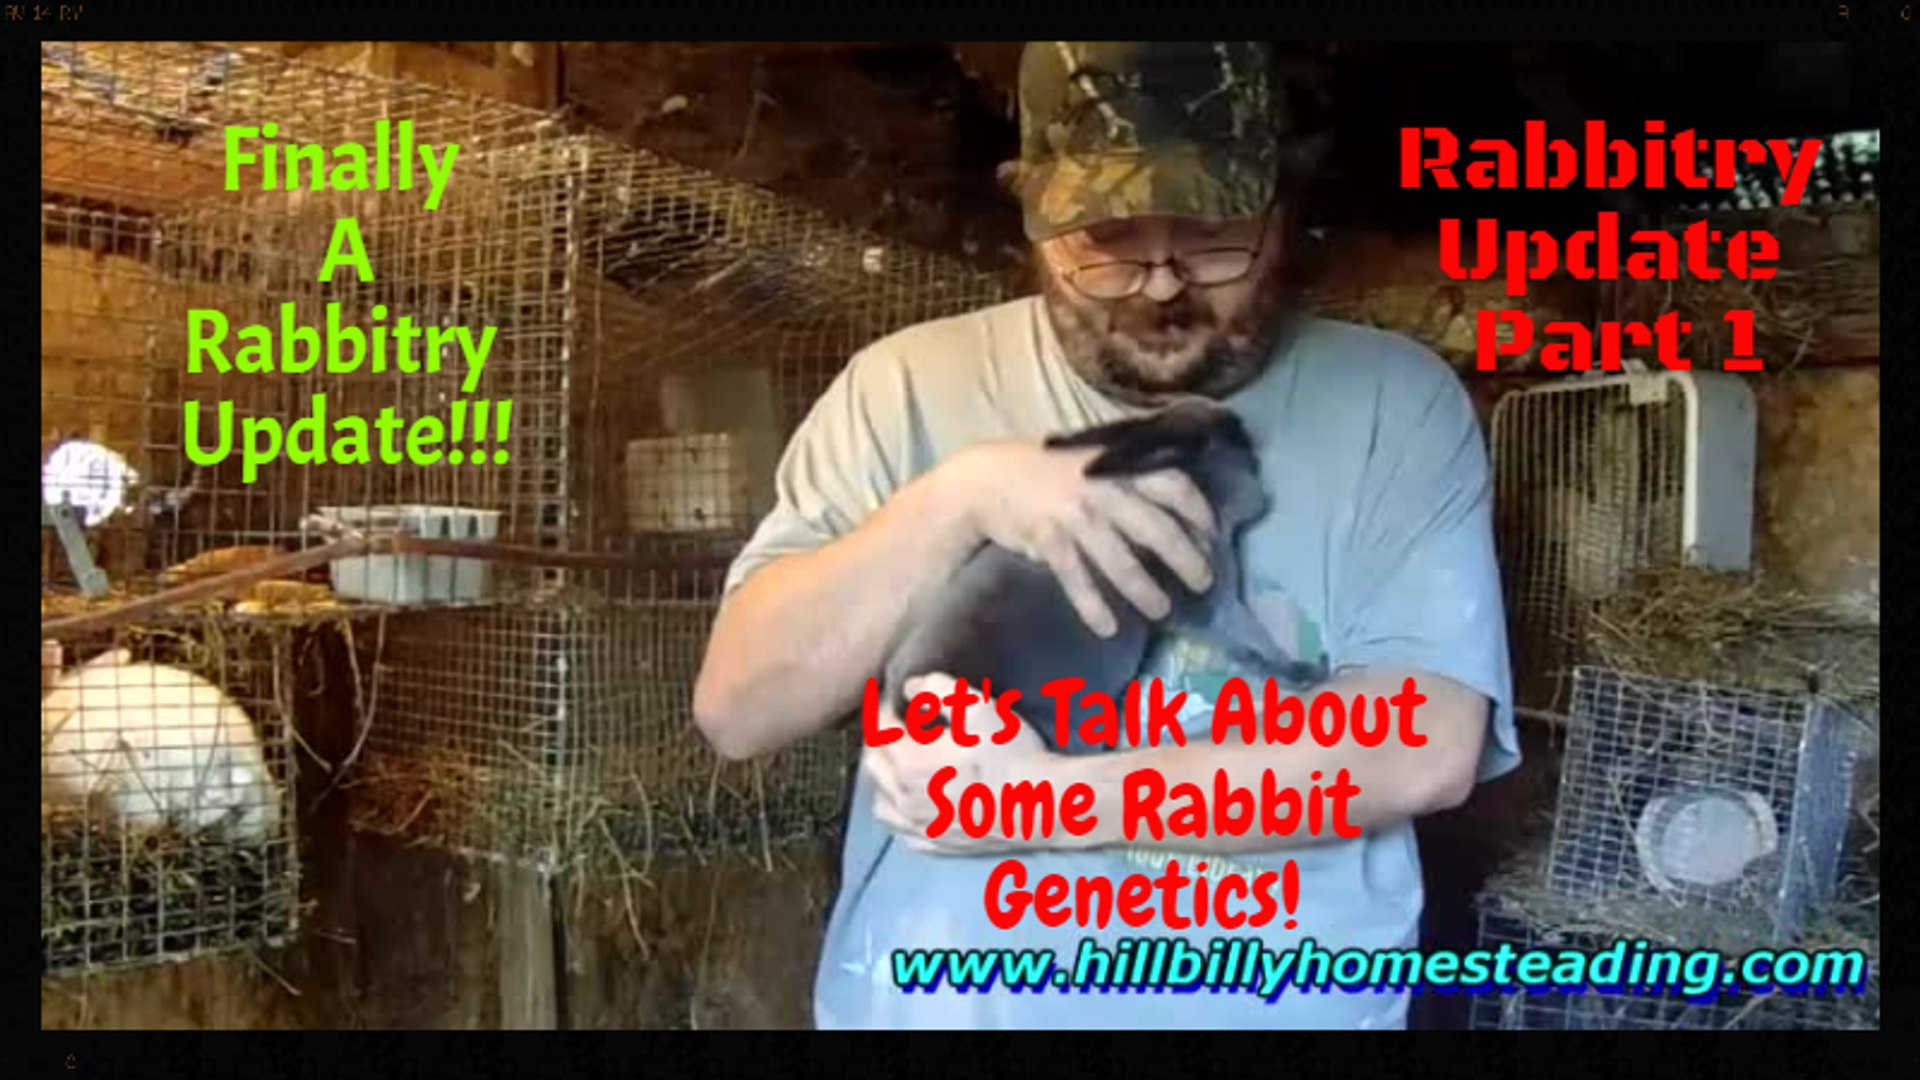 Rabbits - Overdue Rabbitry Update 10-9-2016 Baby Bunnies and Discussing Rabbit  Genetics!.mp4